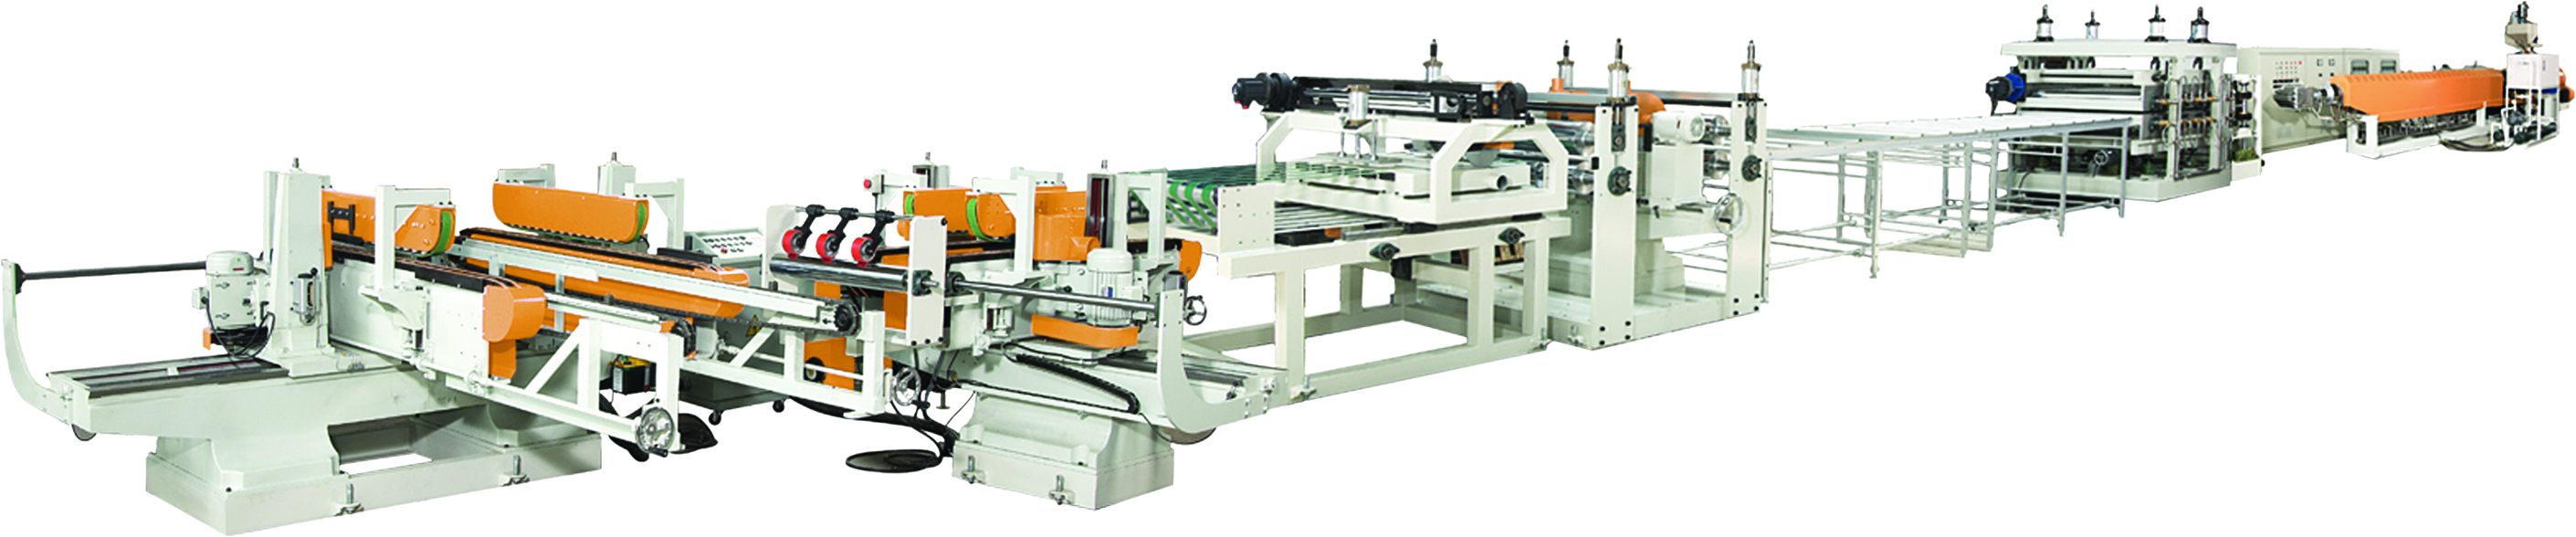 Poly Machinery is versed particularly at developing XPS plank making machines.